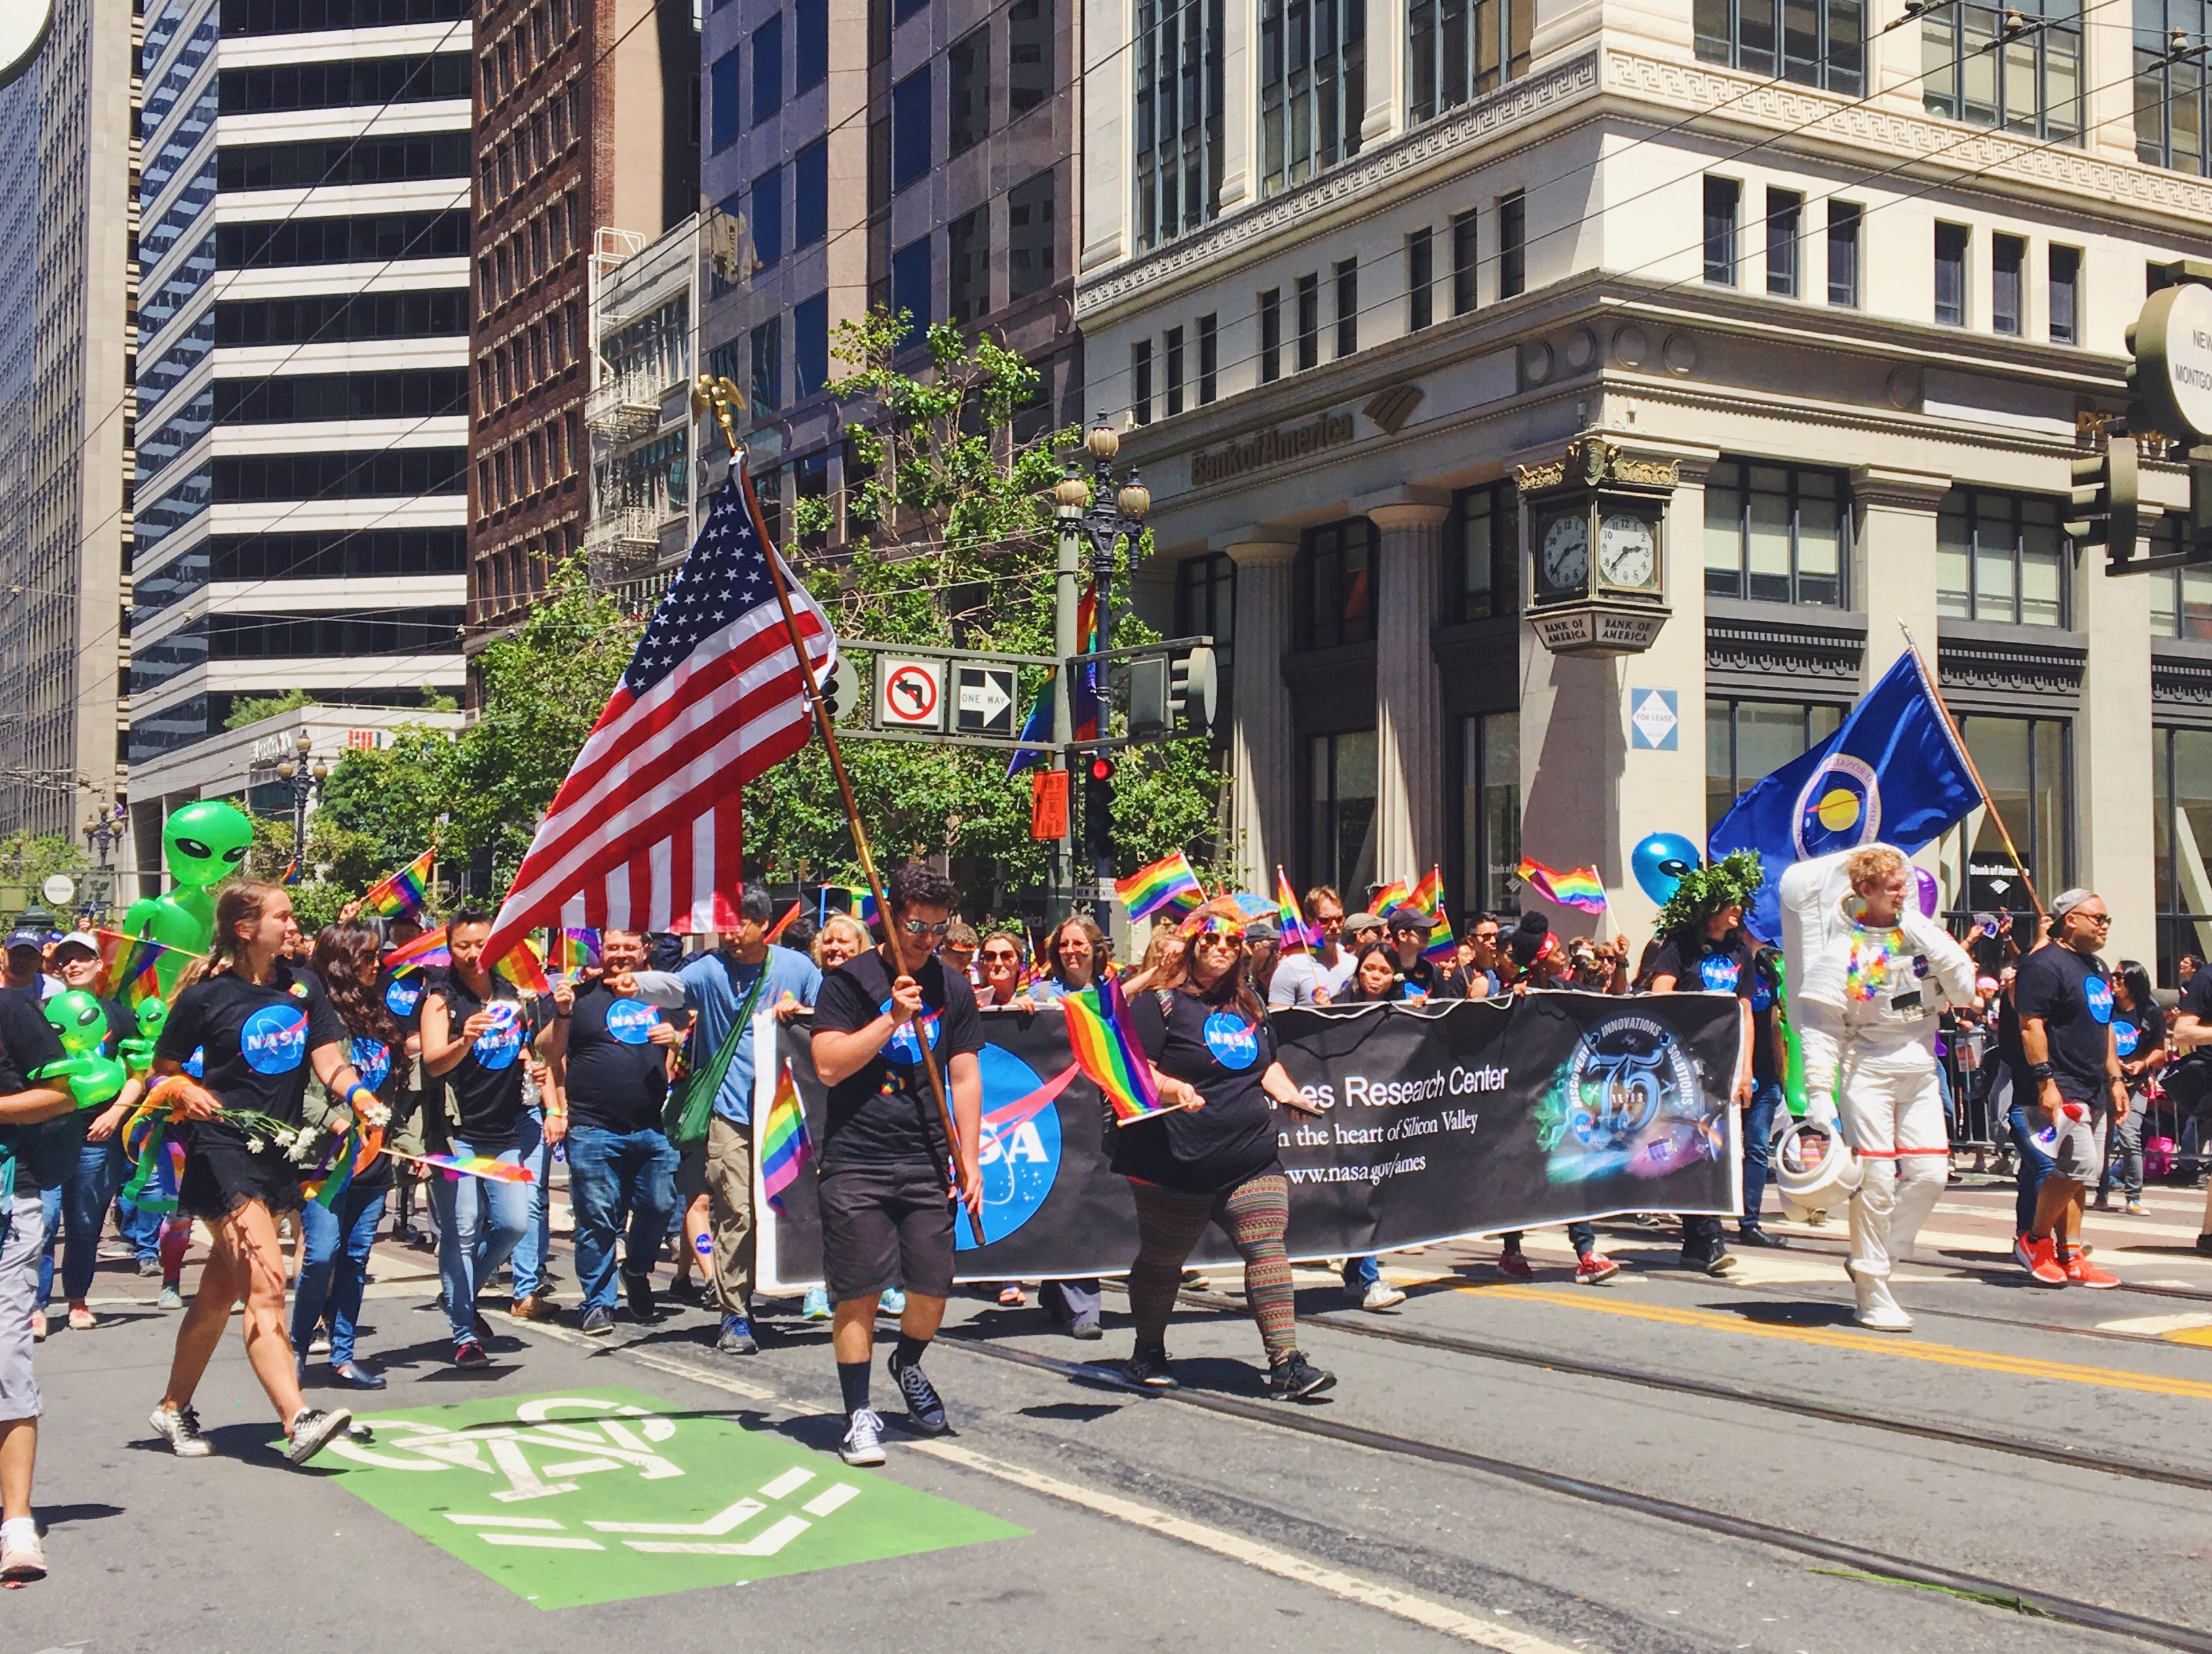 La NASA - AMES Research Center - L'evento migliore di San Francisco - la LGBTQ Pride Parade